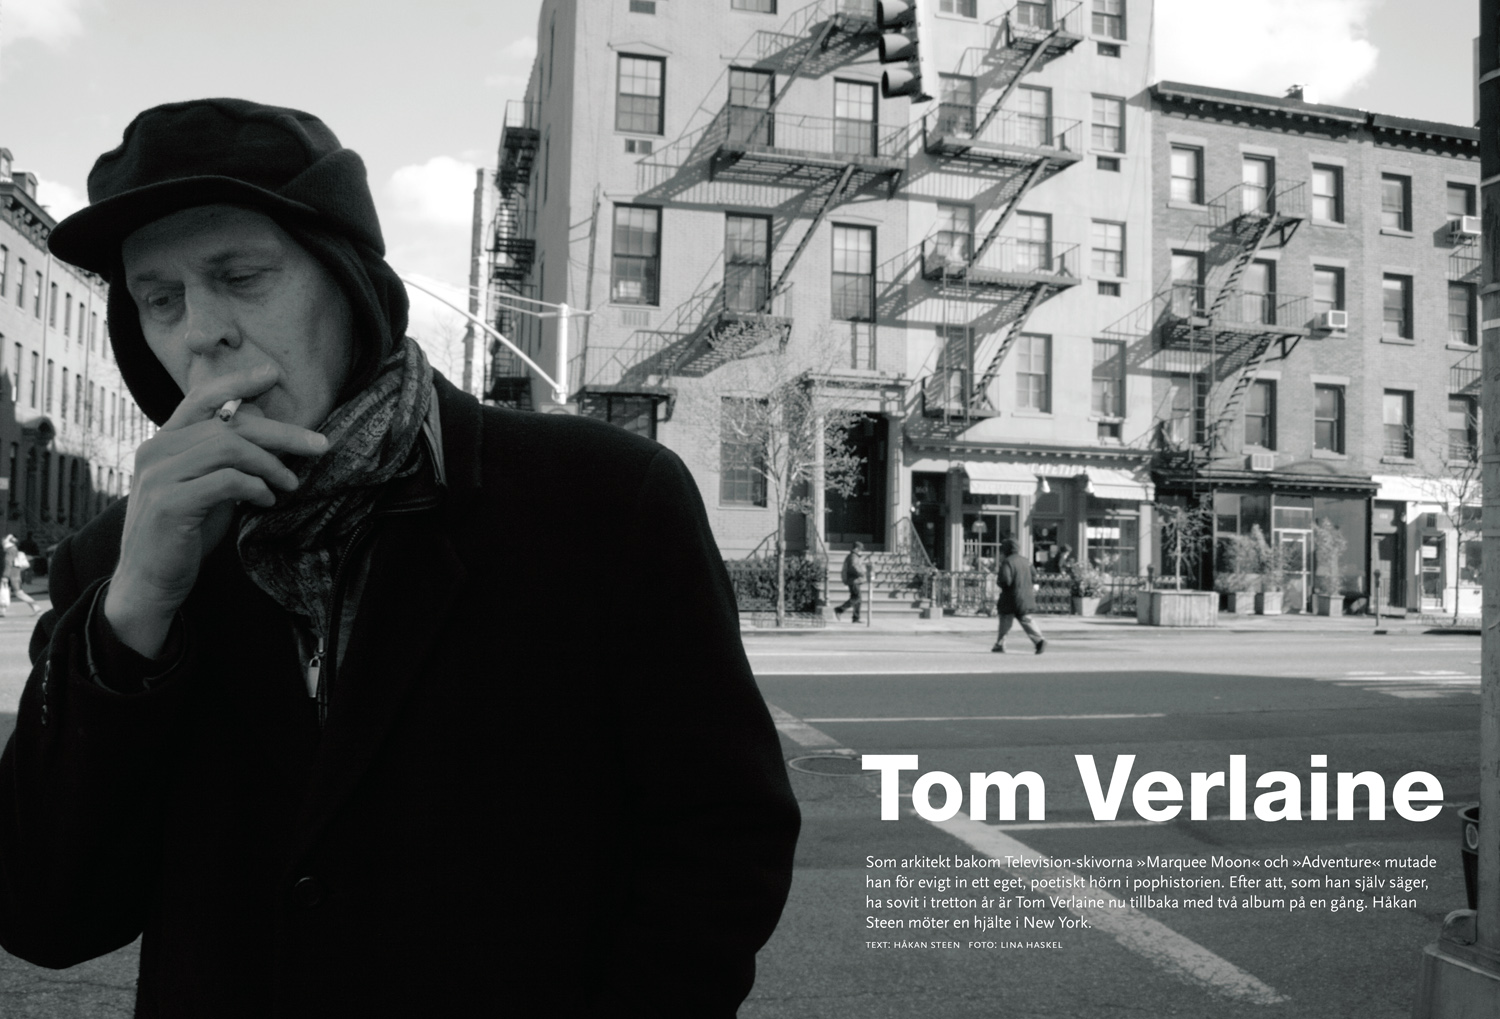 Tom Verlaine/Television, New York (Sonic magazine)